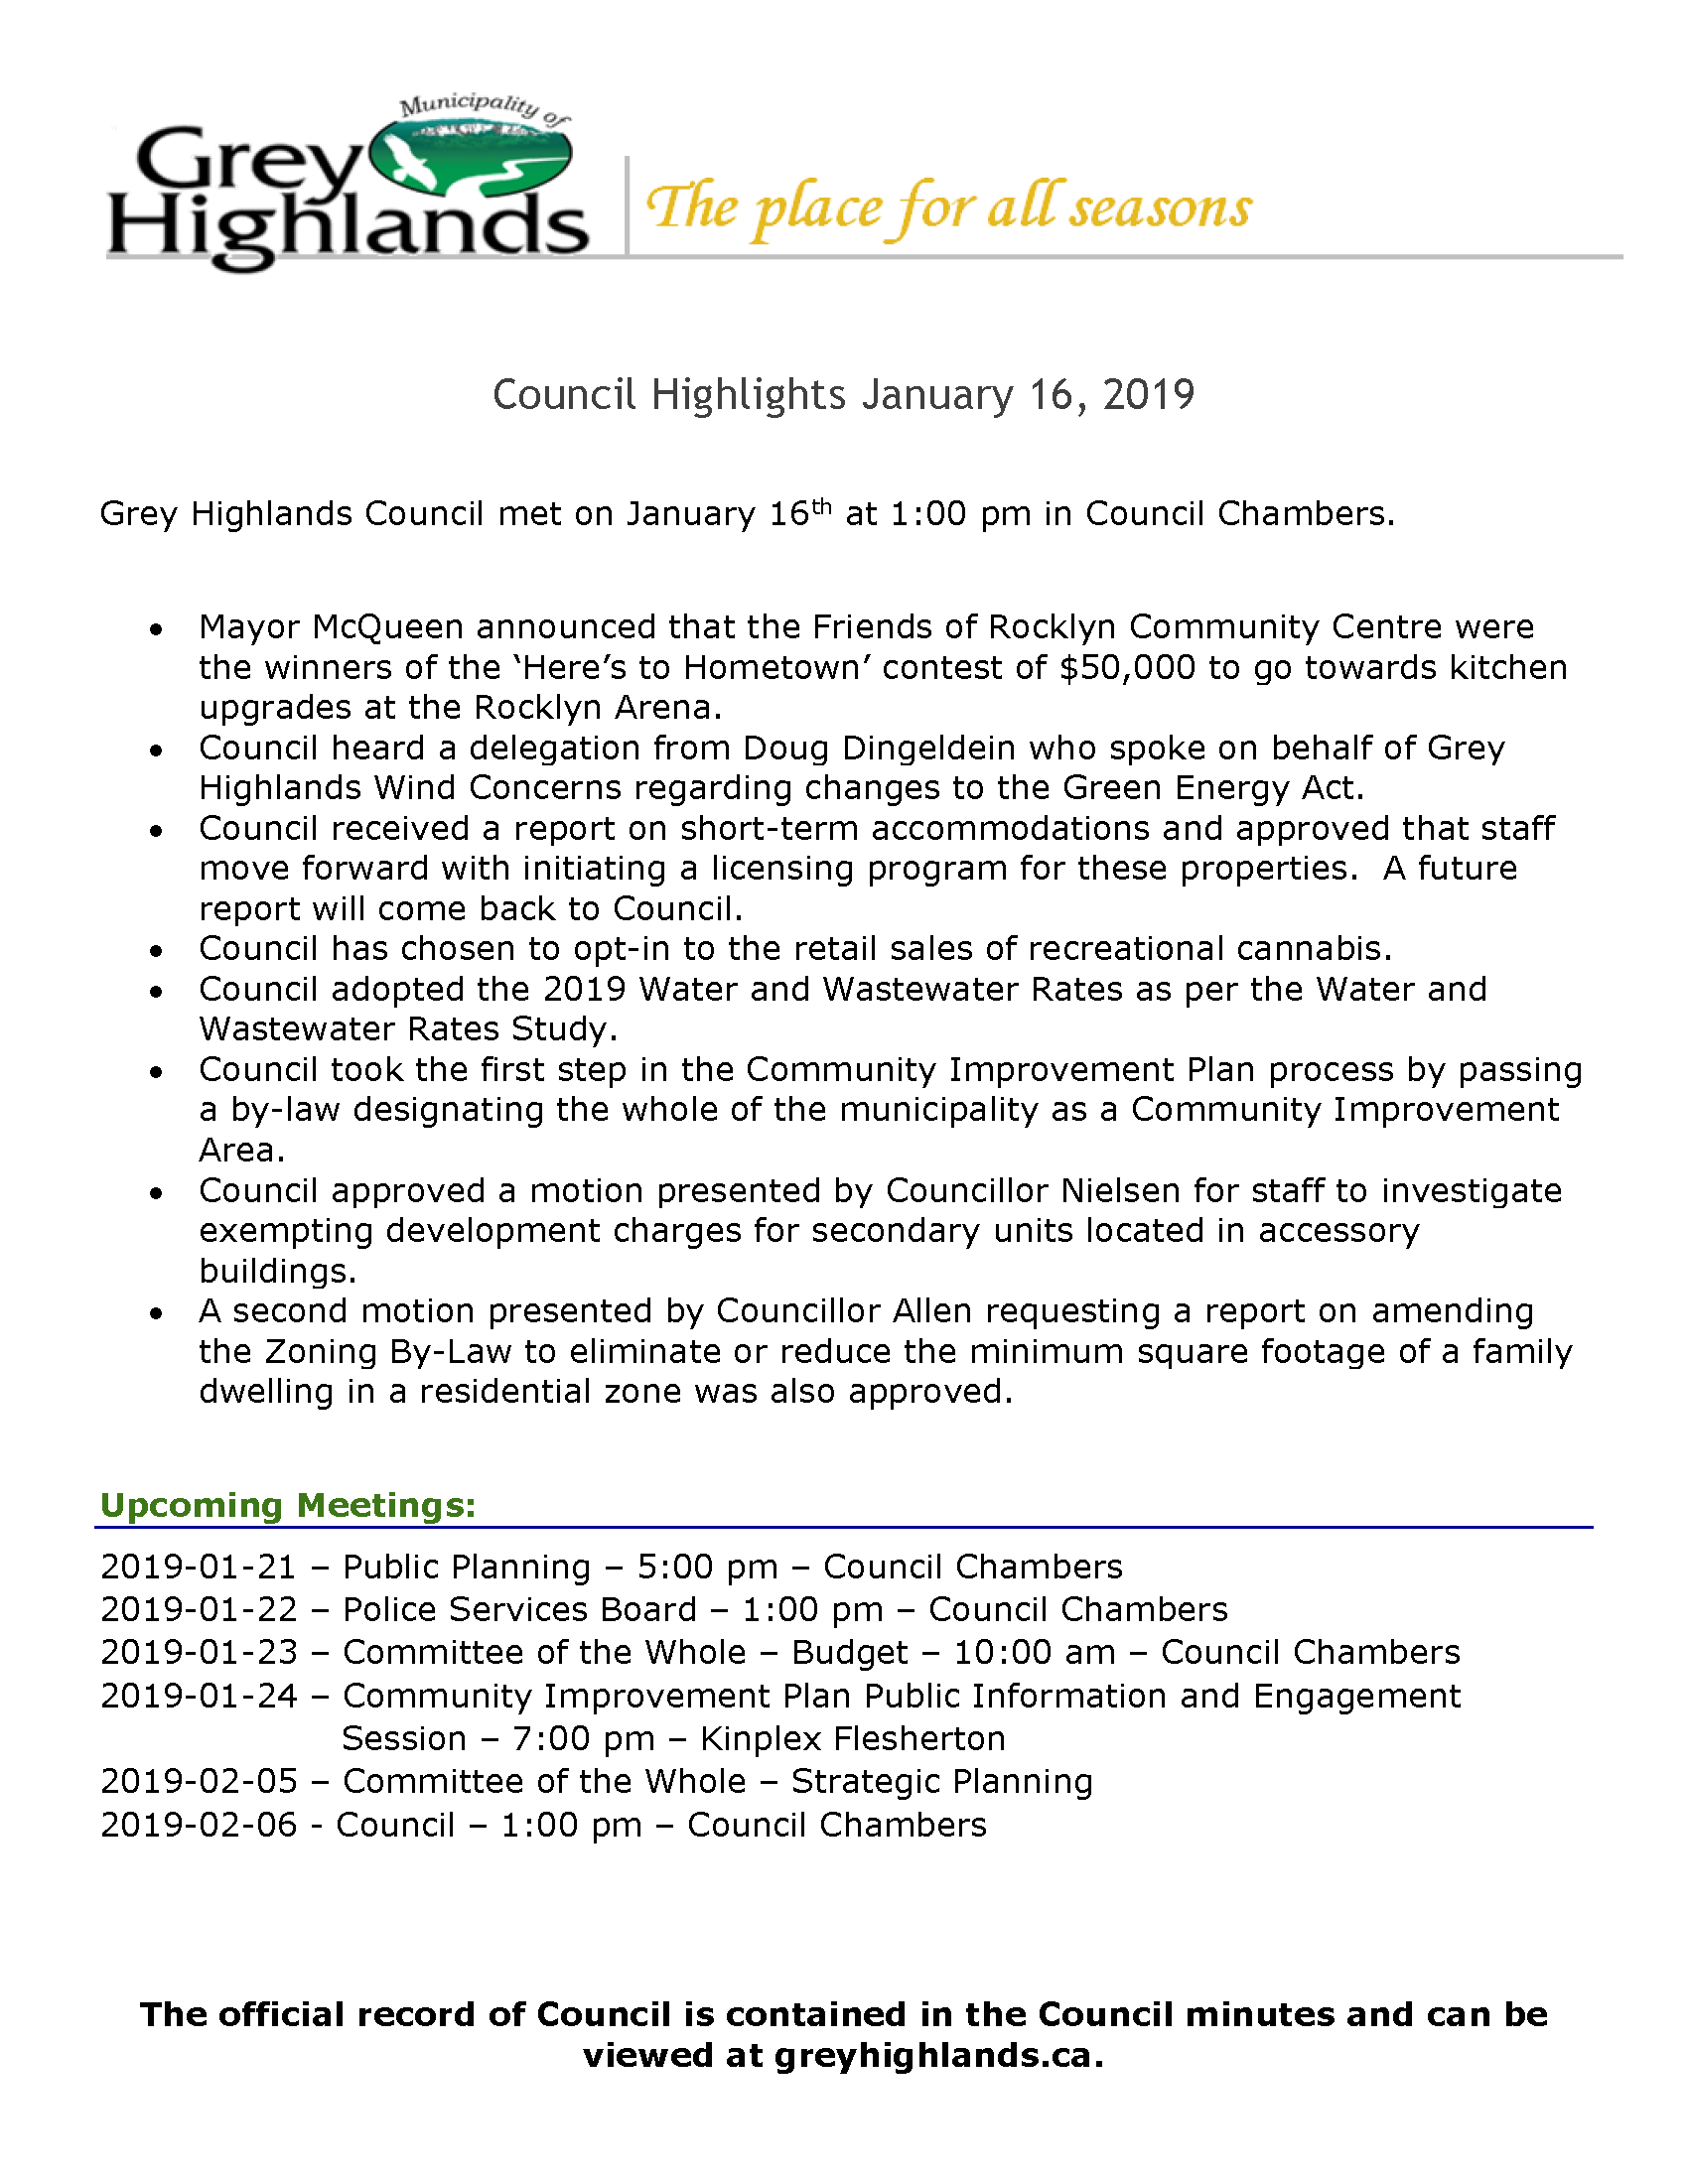 Council Highlights - January 16, 2019